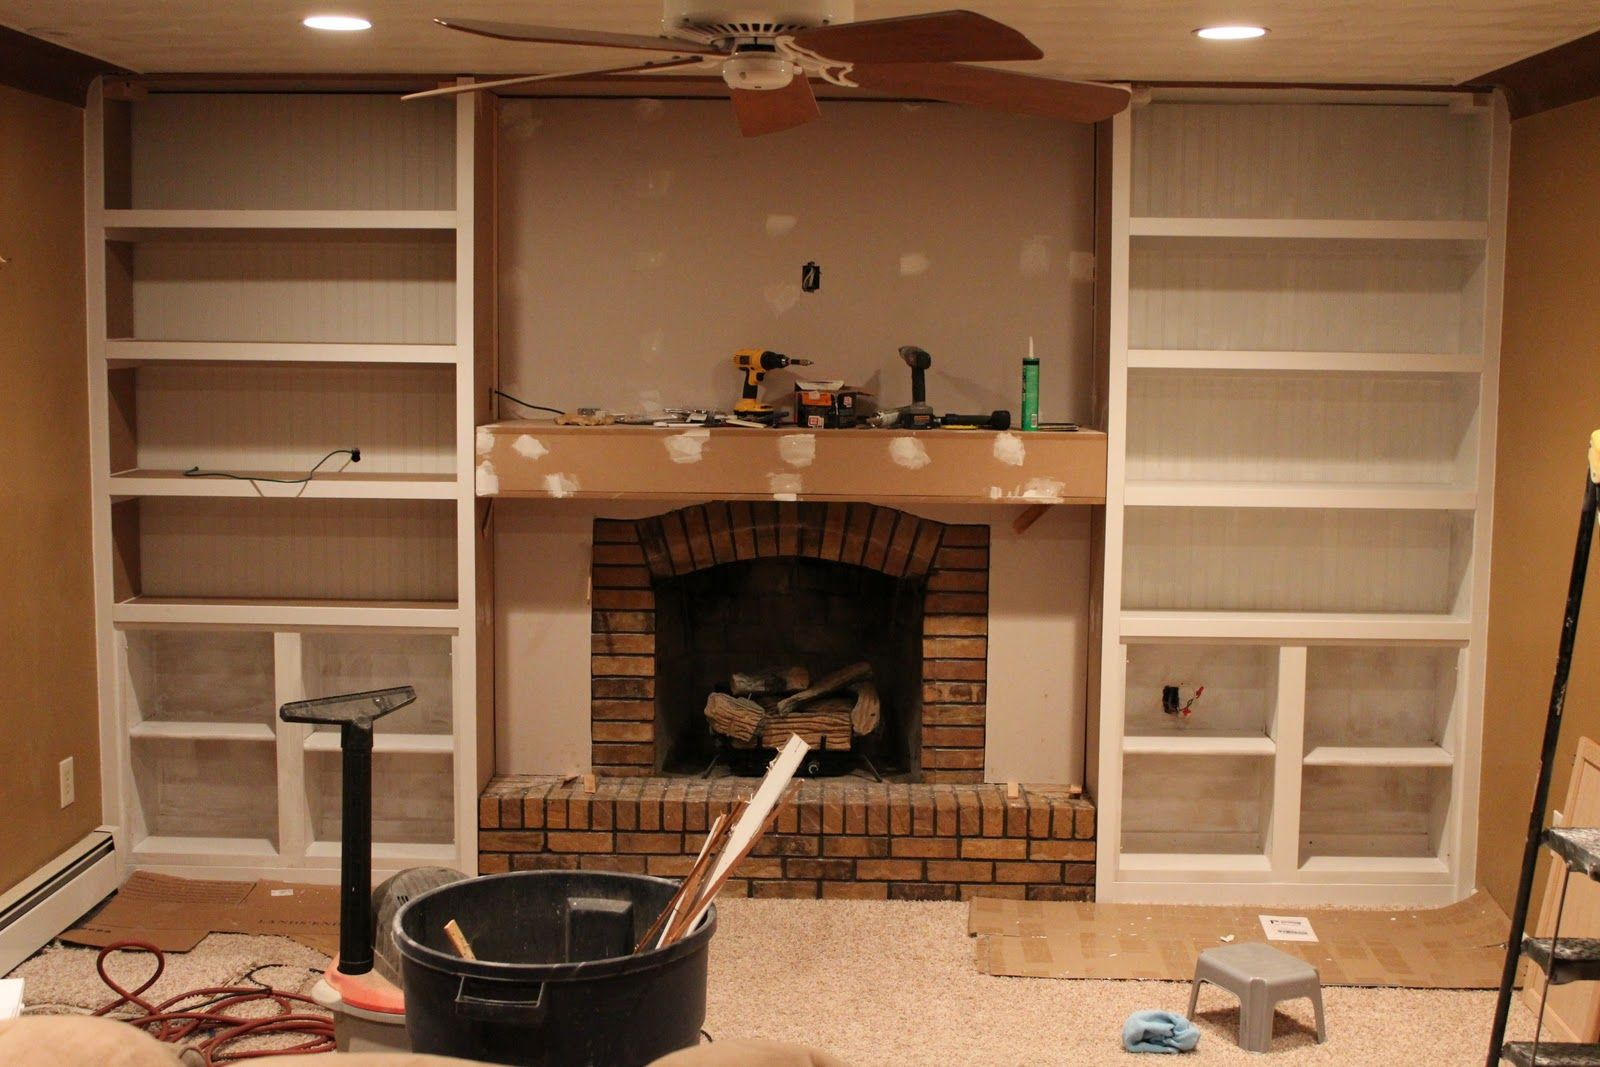 How To Build Shelves Around Fireplace Between The Shelves We